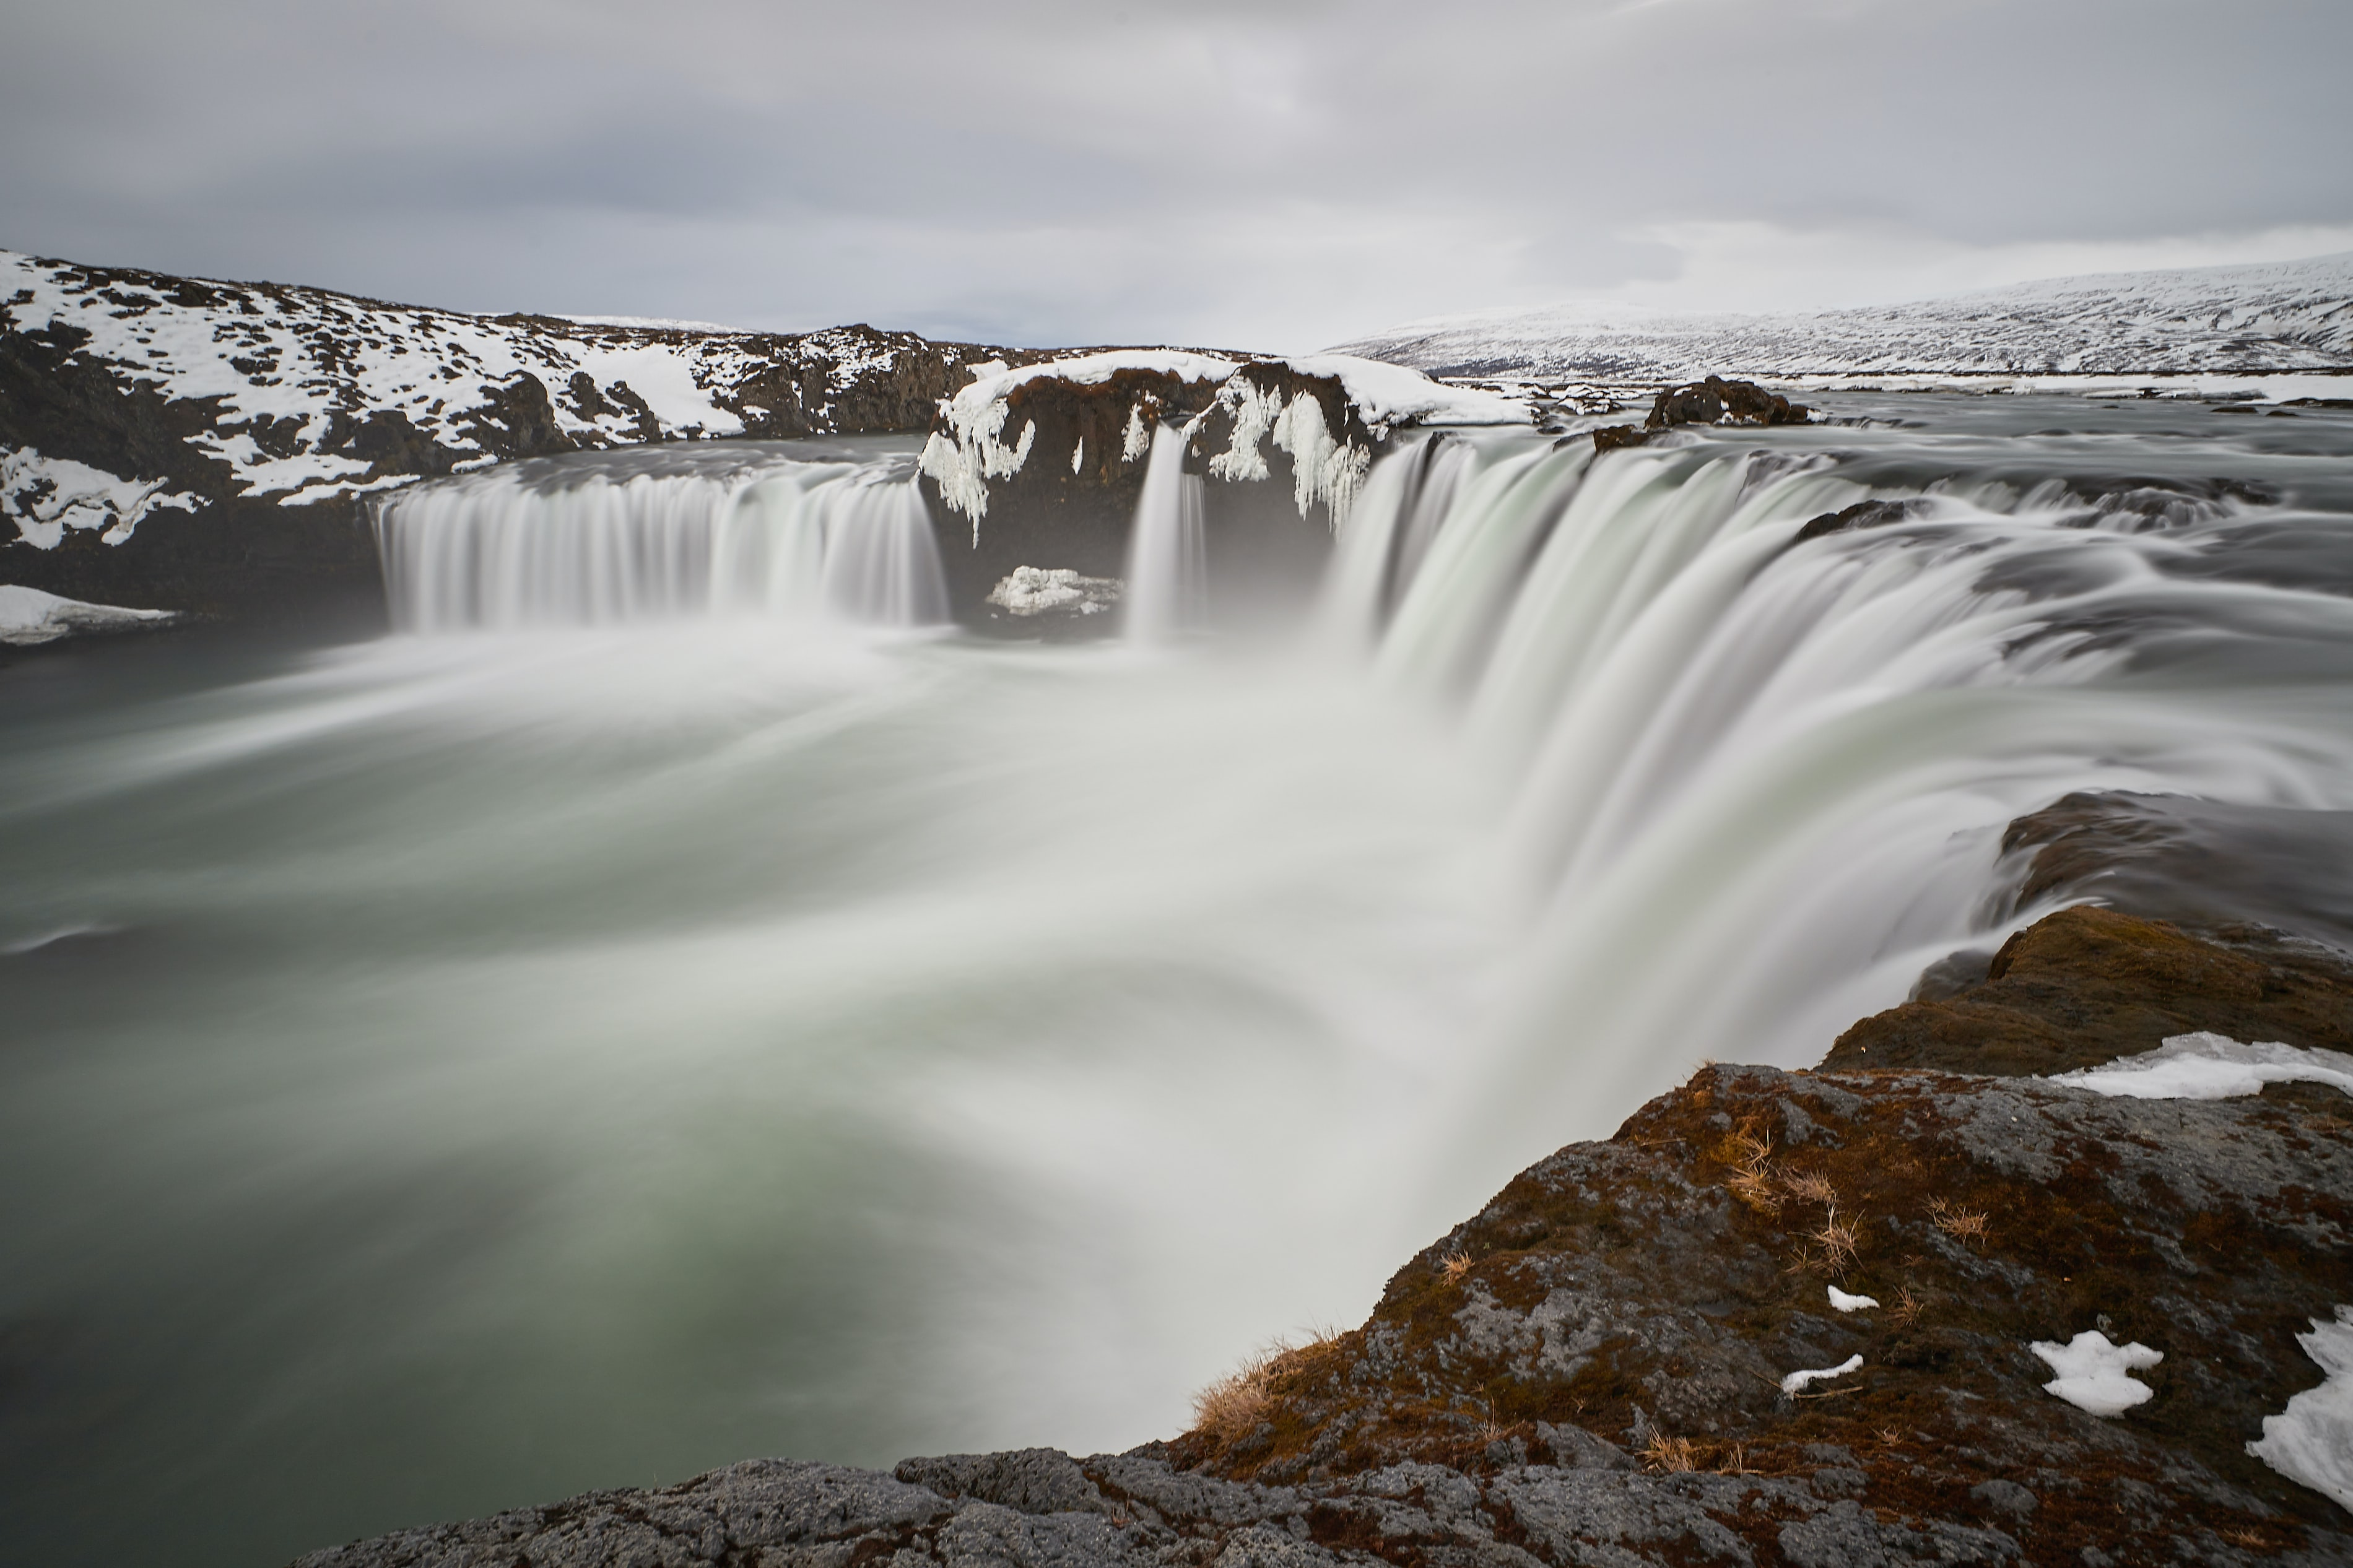 timelapse photography of waterfalls